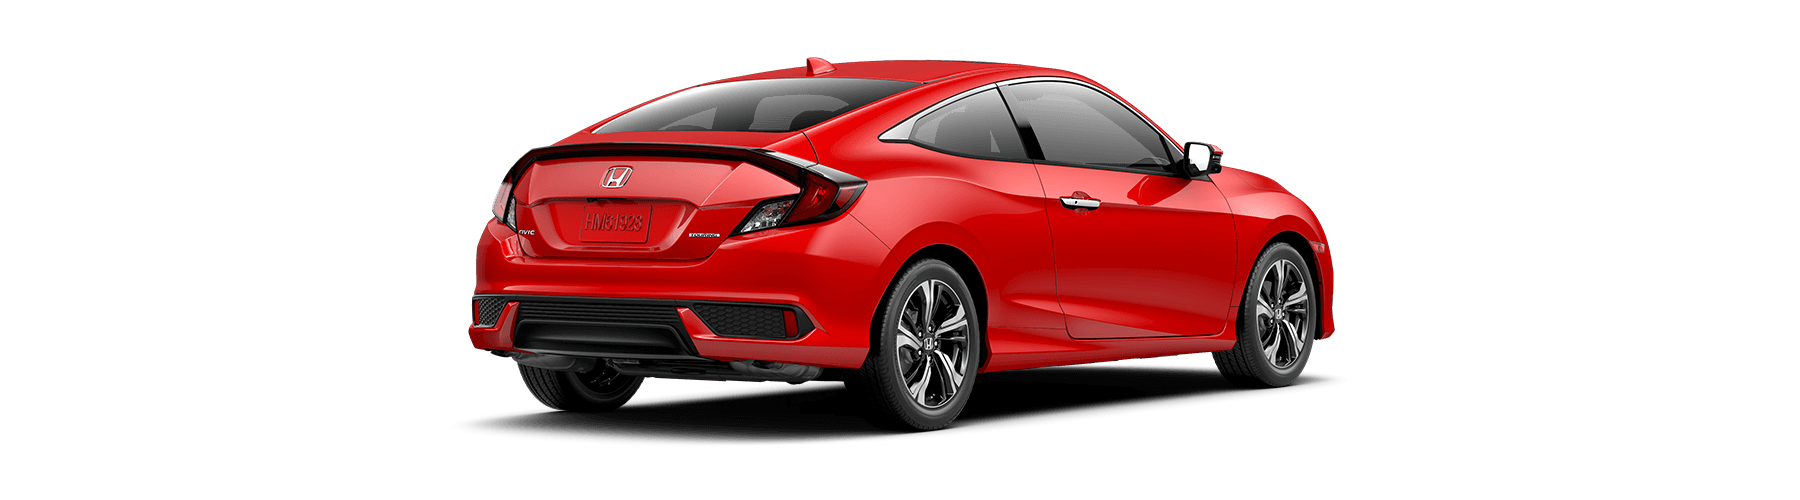 2018 Honda Civic Coupe Rear Angle